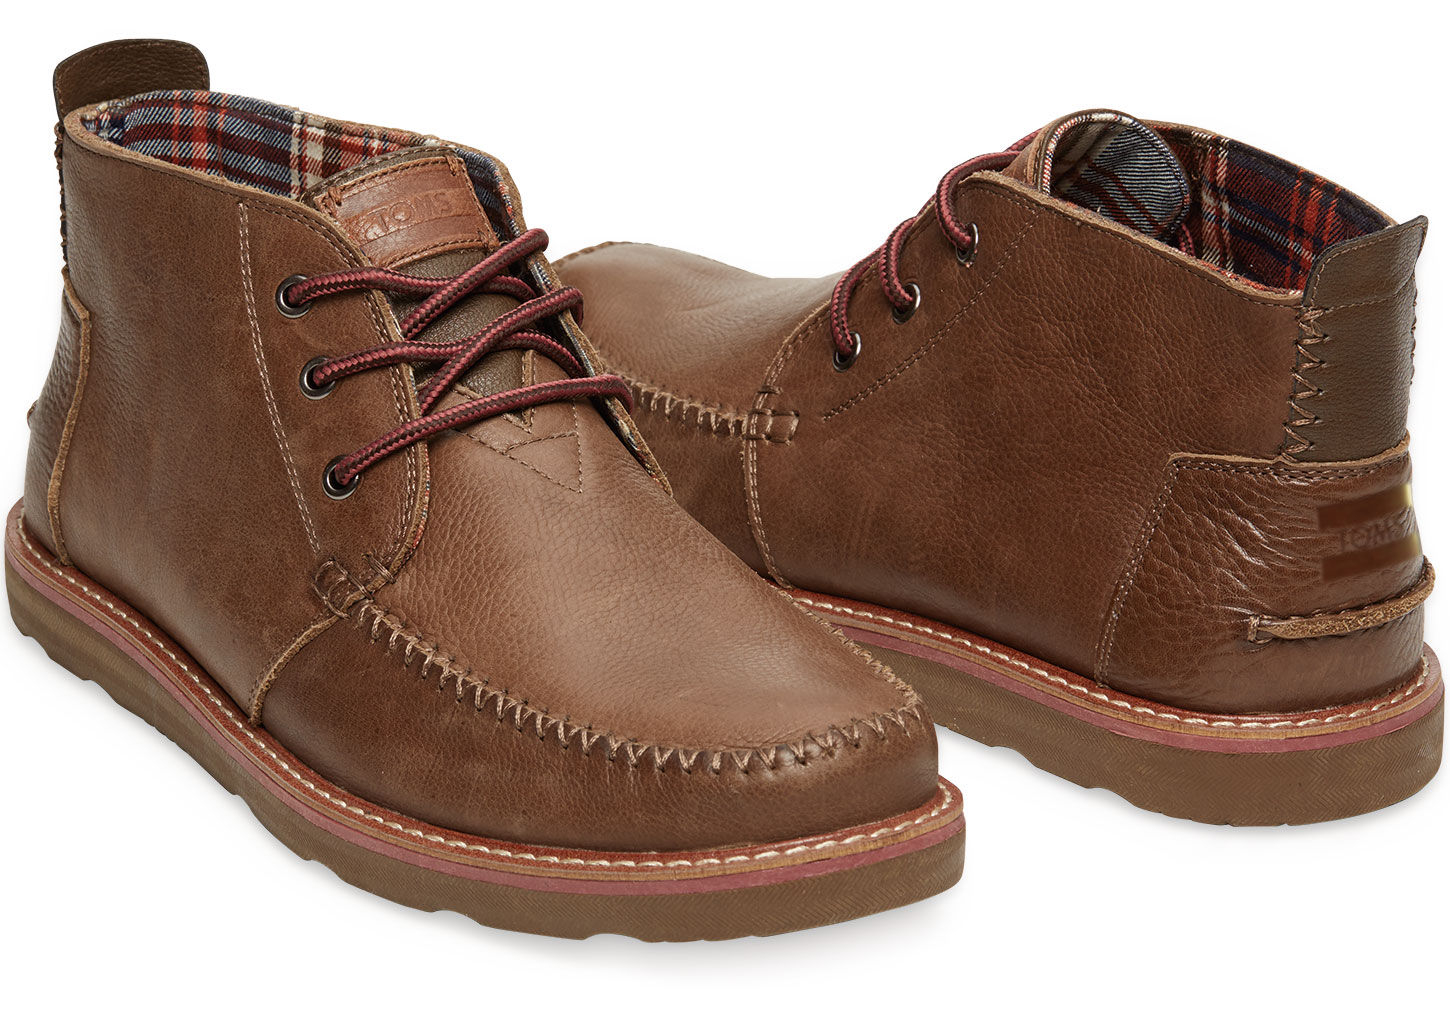 Mens Brown Chukka Boots WGhV4uCT